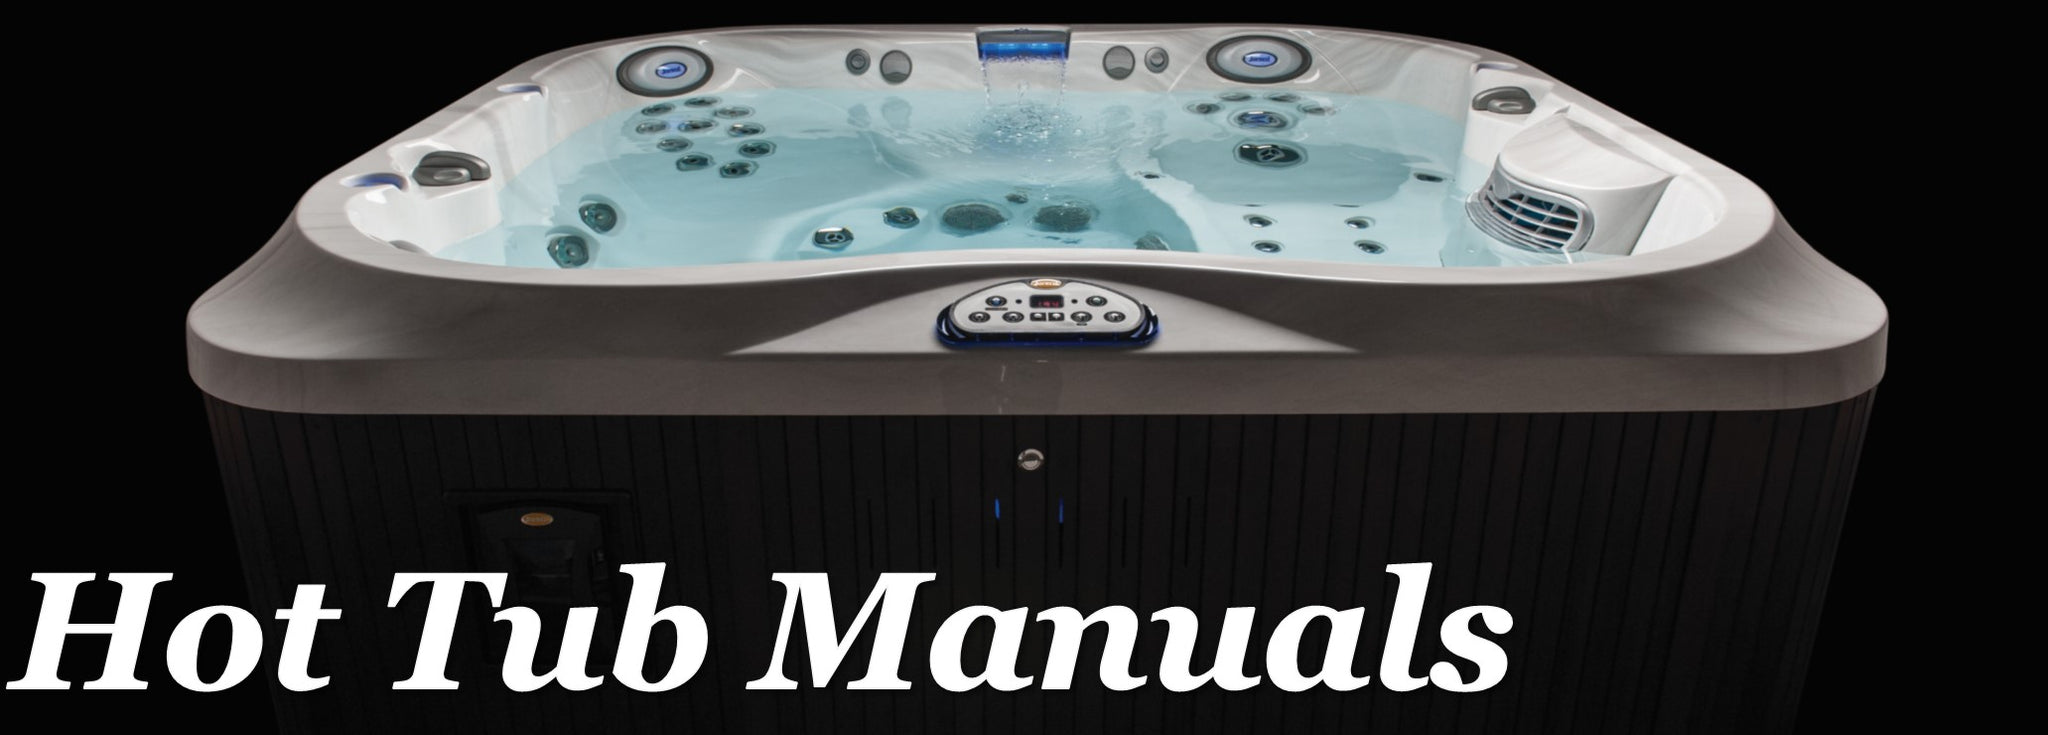 Sundance Hot Tub Manual - User Guide Manual That Easy-to-read •